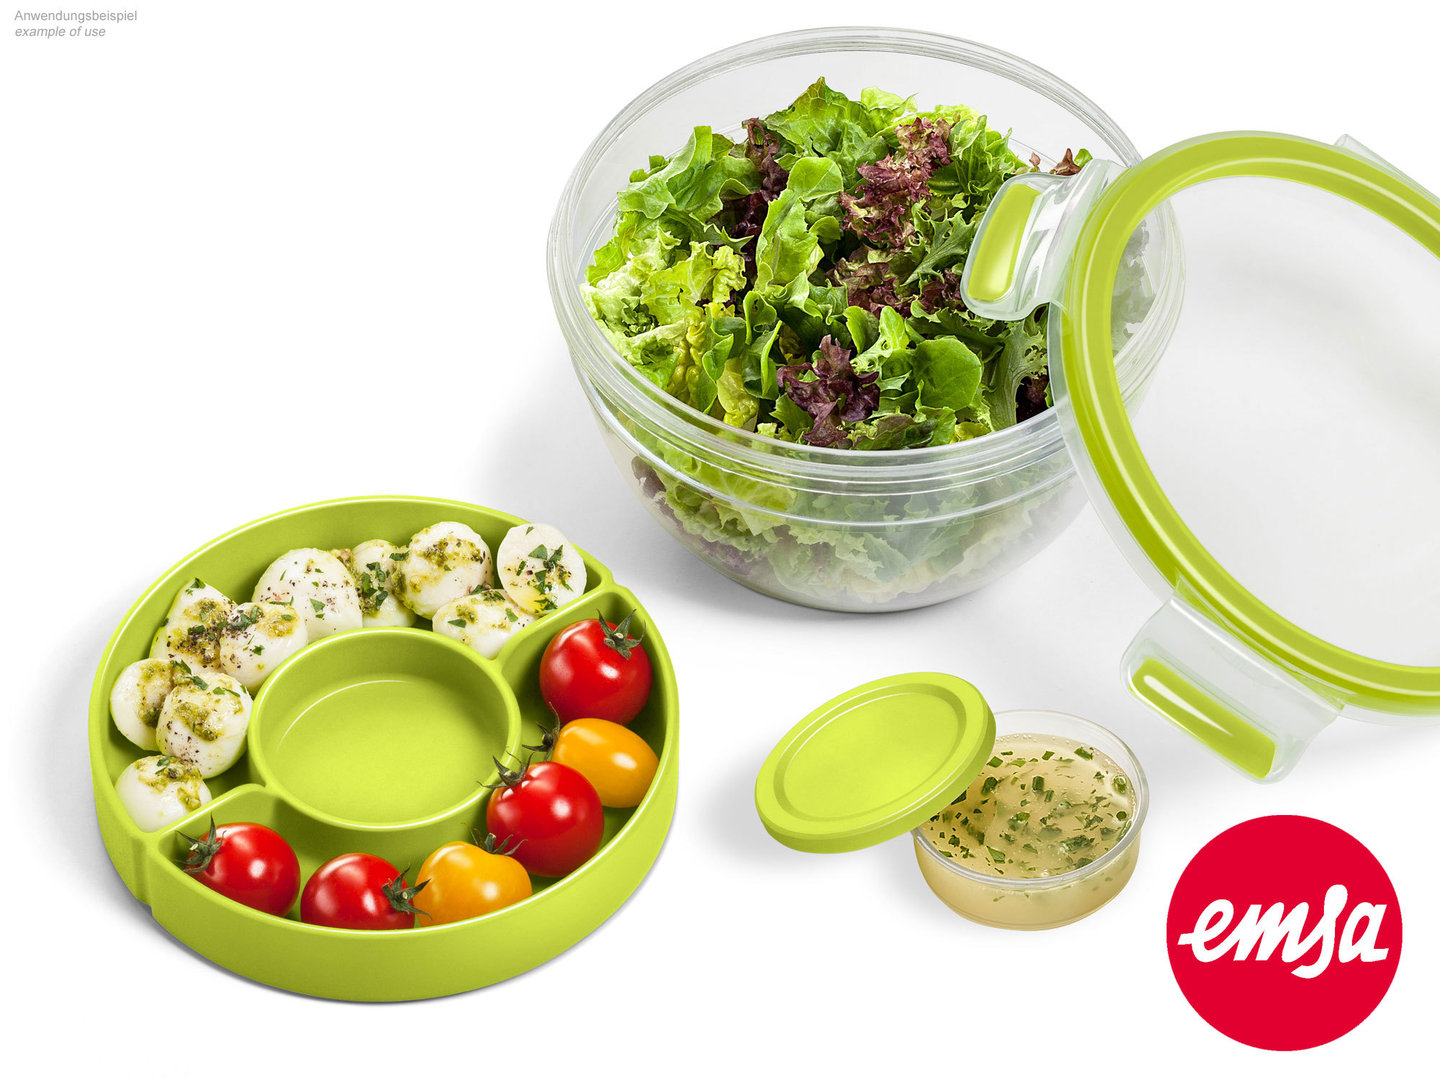 EMSA salad box CLIP & GO food storange container to-go